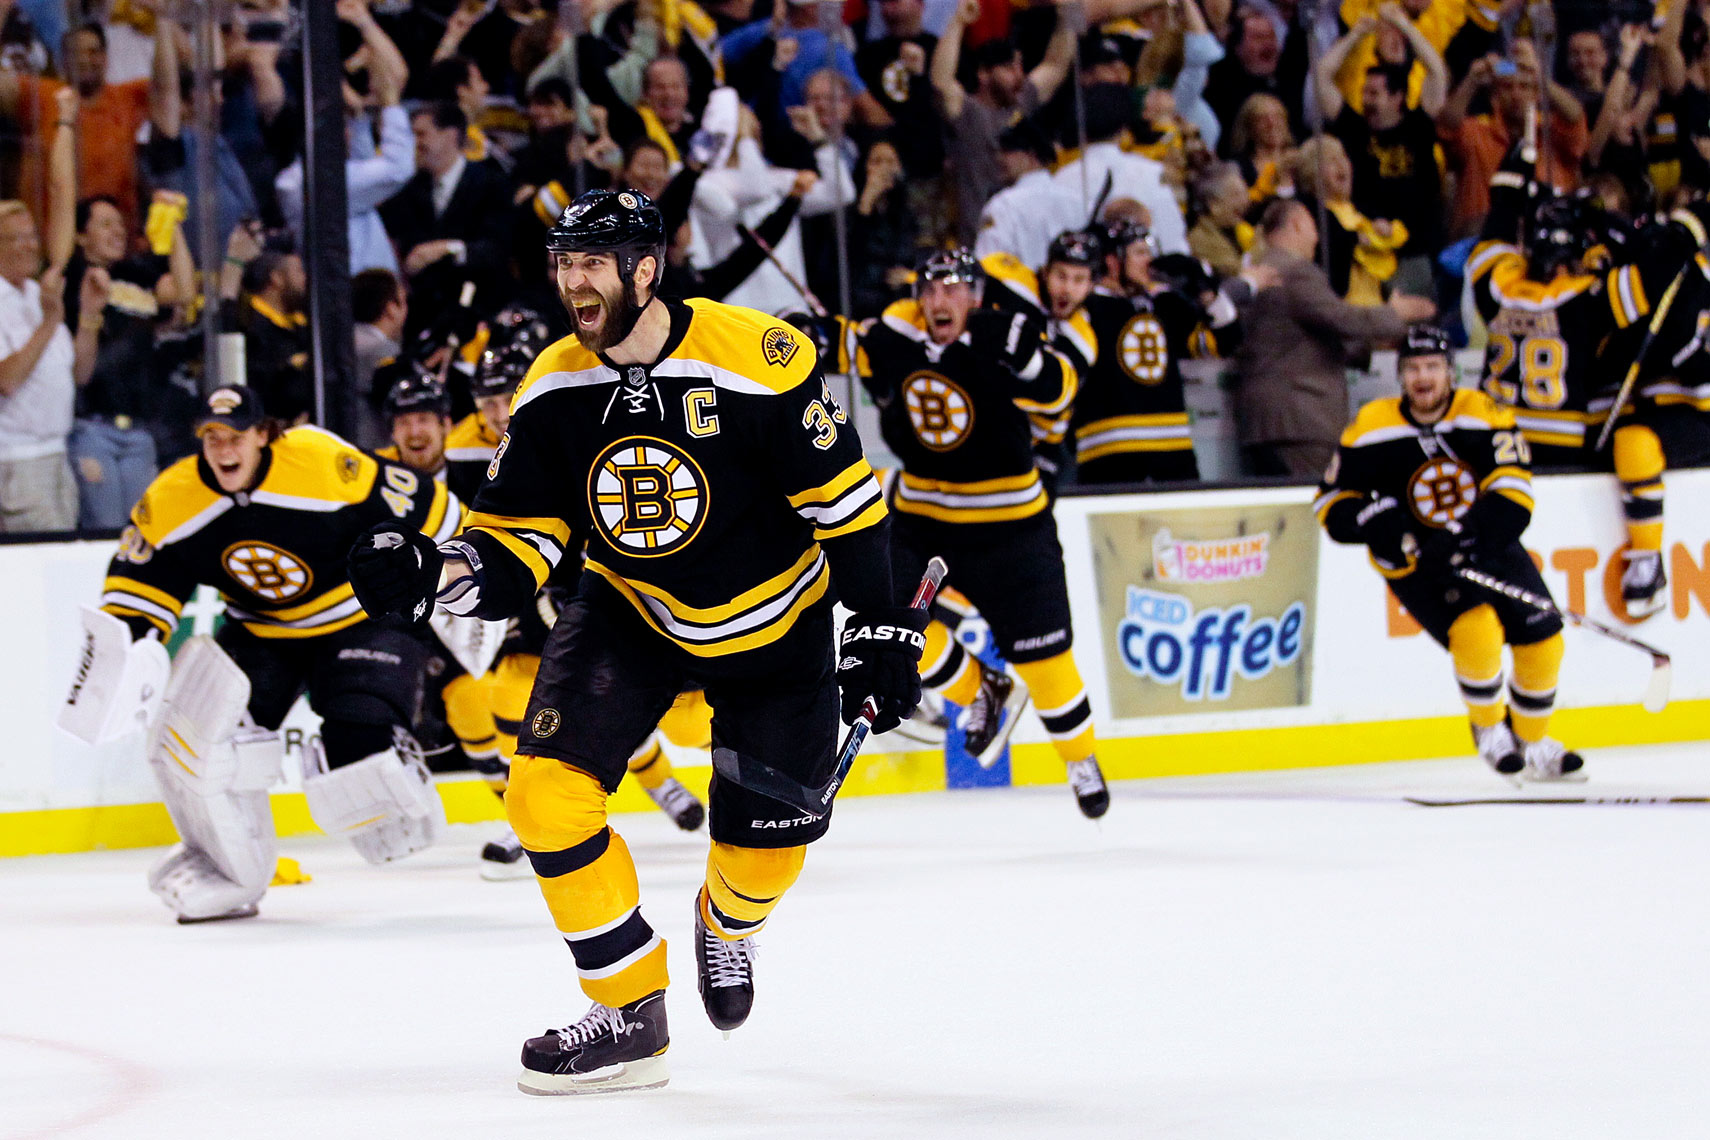 Bruins captain Zdeno Chara reacts to a win in the NHL  Conference Finals in 2011.